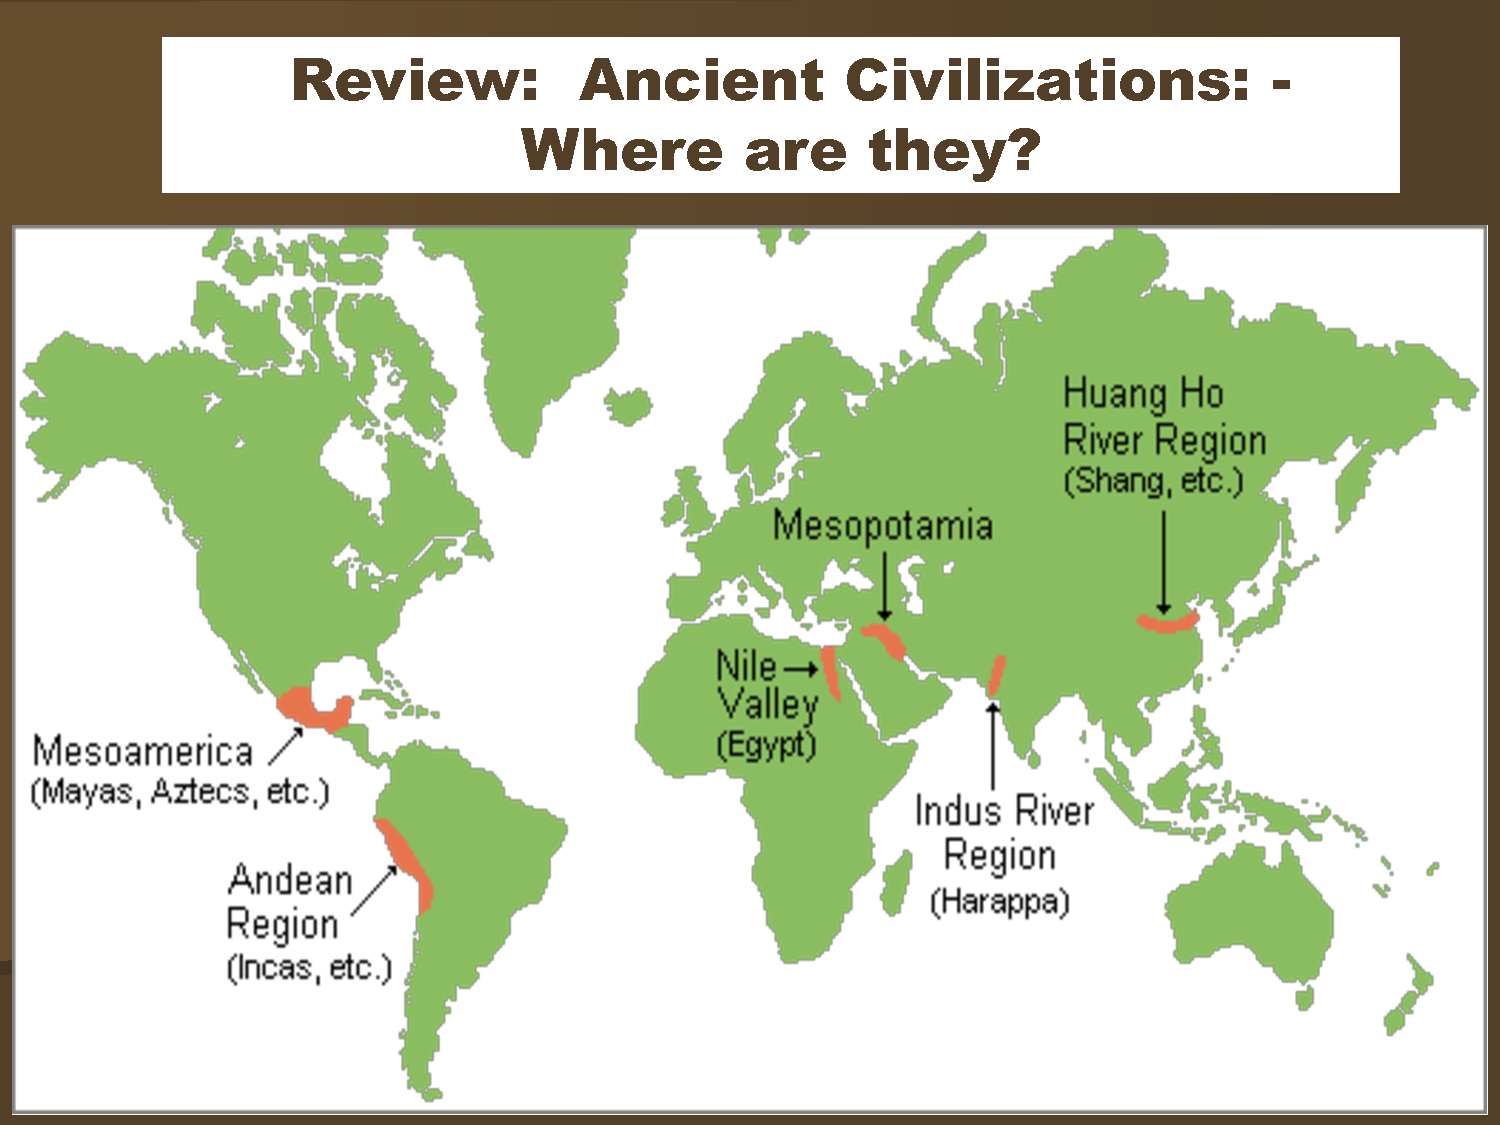 an overview of early civilizations Tci proudly provides interactive experiences with their middle school social studies textbooks & history curriculum through a hands on teaching environment overview table of contents as they explore the great early civilizations of egypt and the near east, india, china, greece.